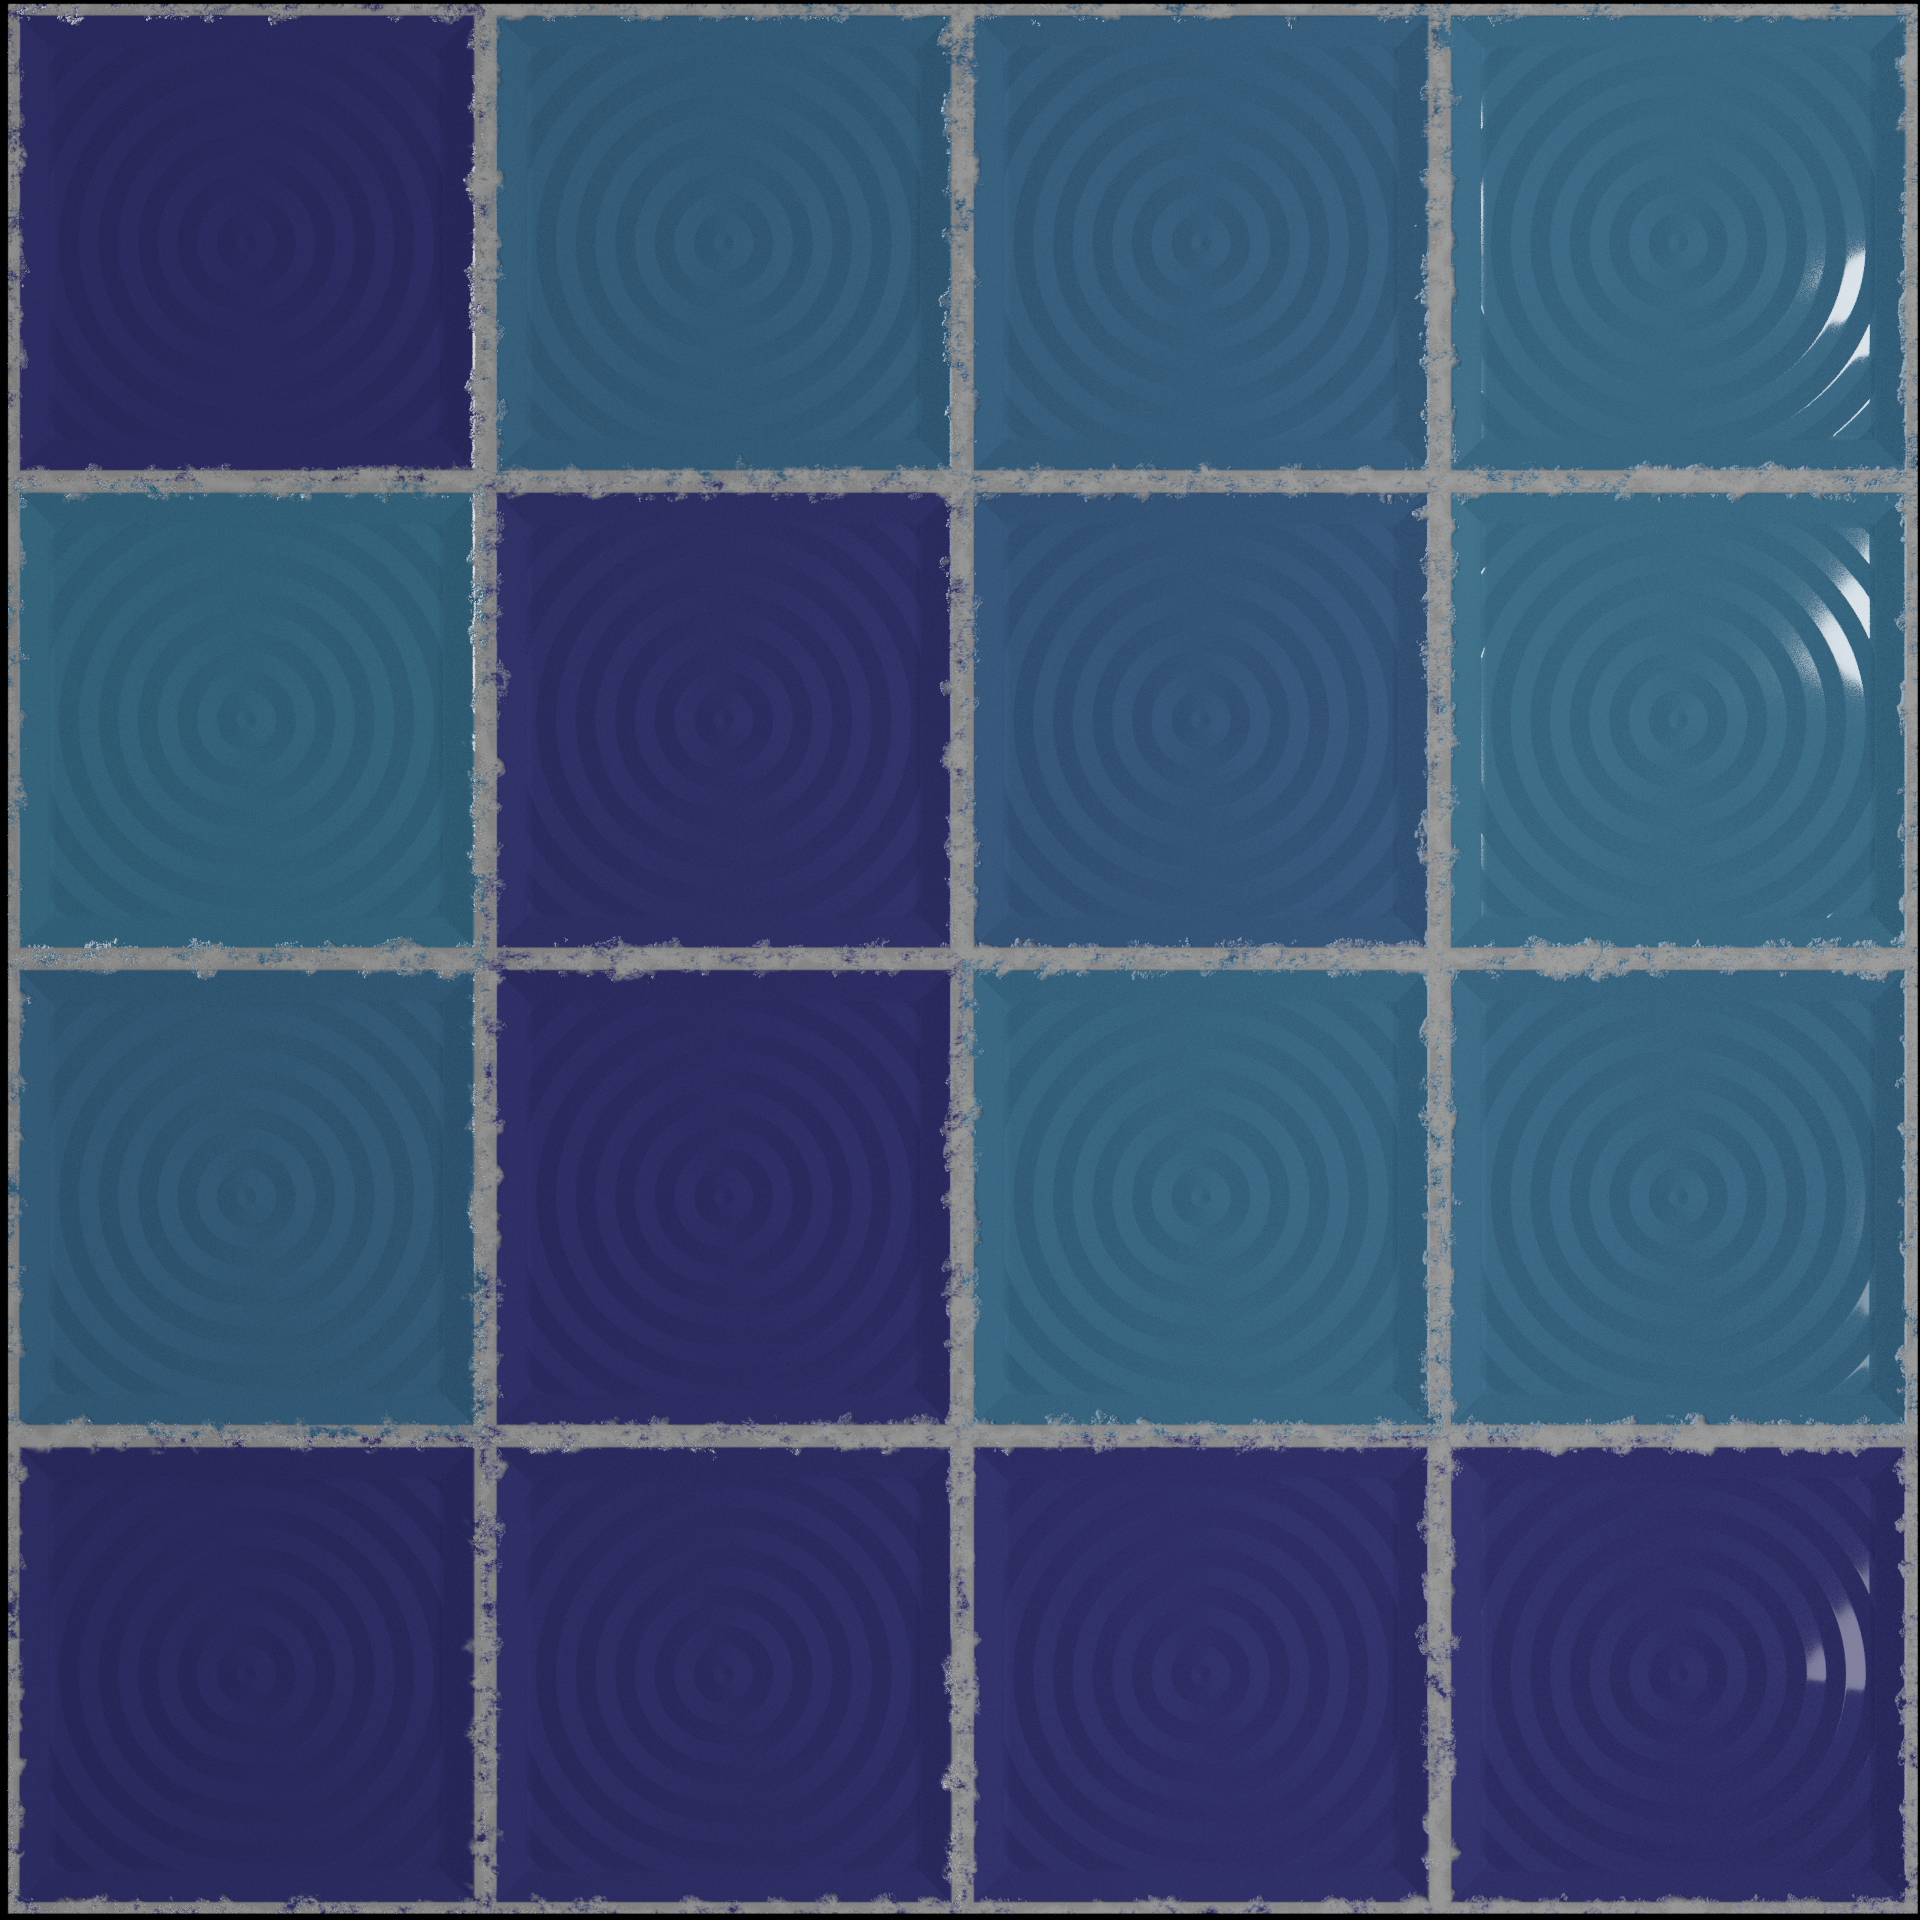 Tile Example 2